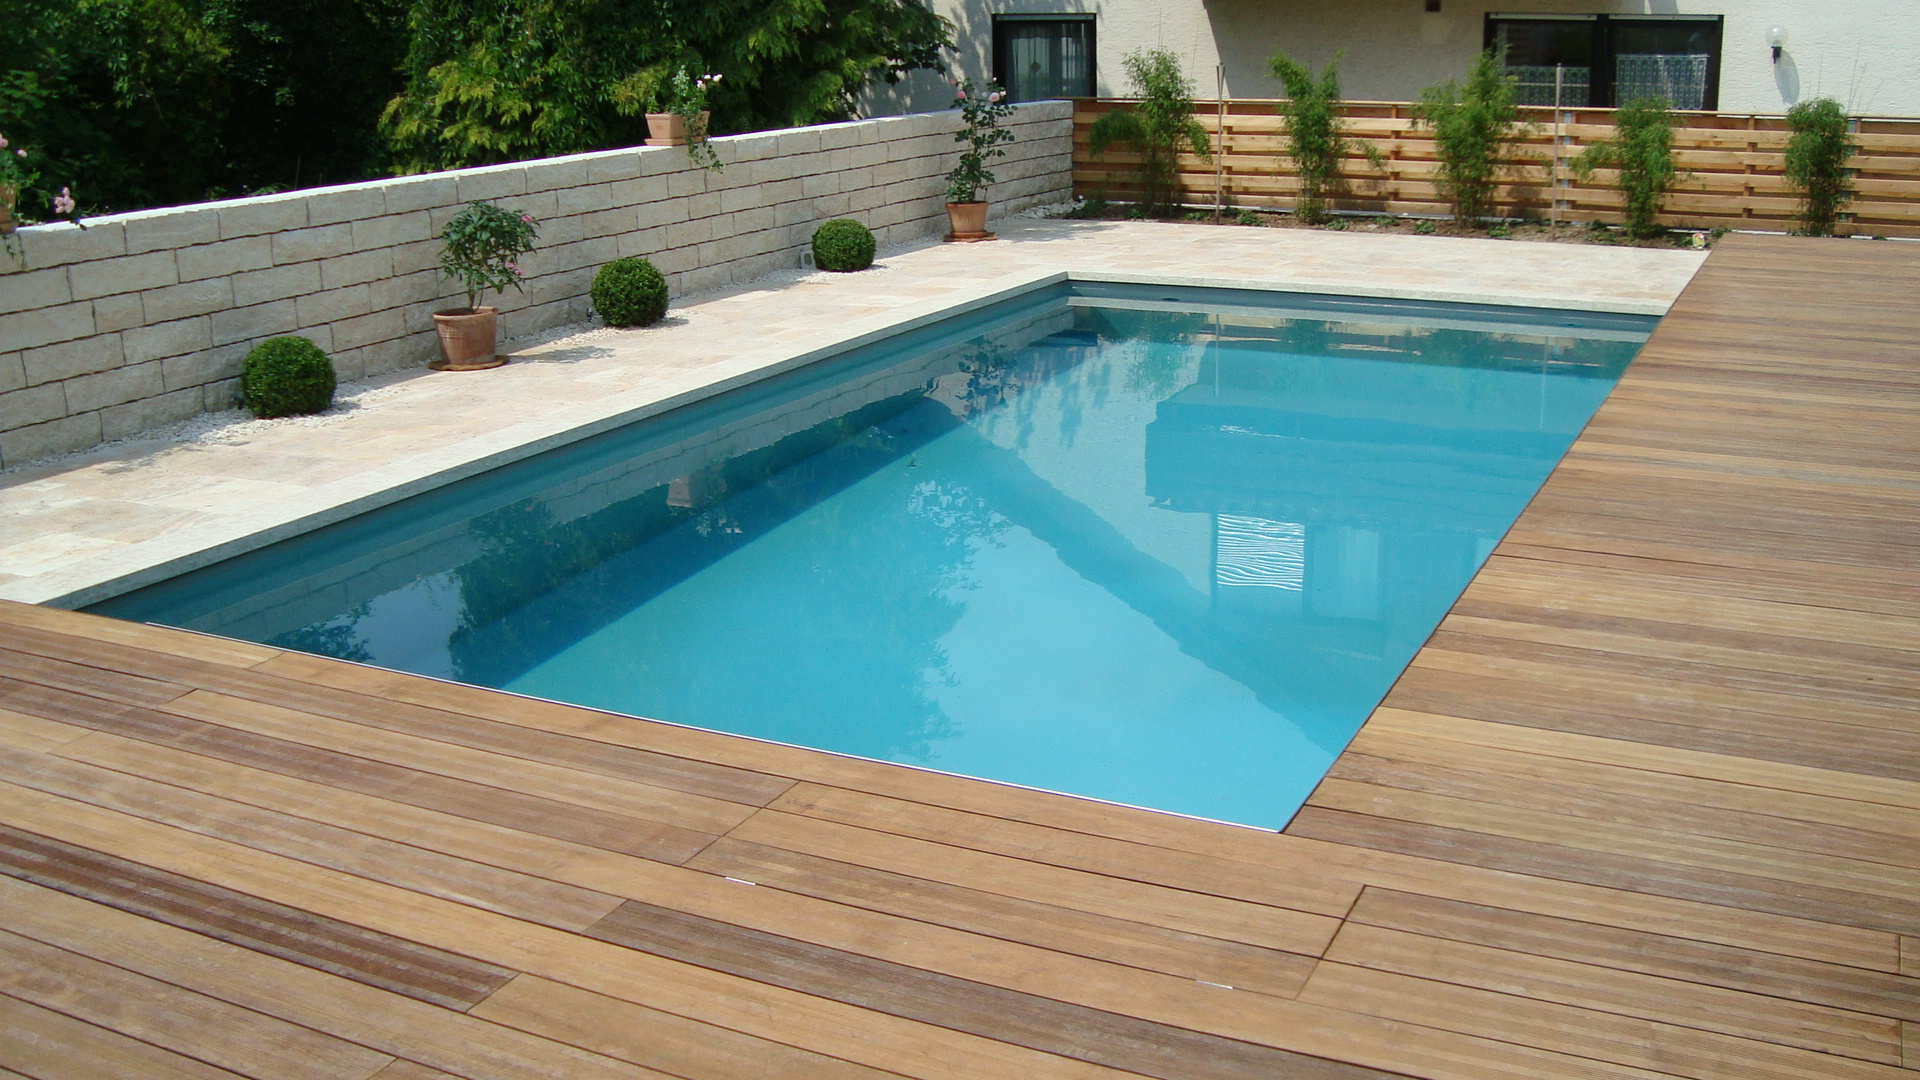 pool im garten holz swimmingpools fur den garten kaufen im. Black Bedroom Furniture Sets. Home Design Ideas